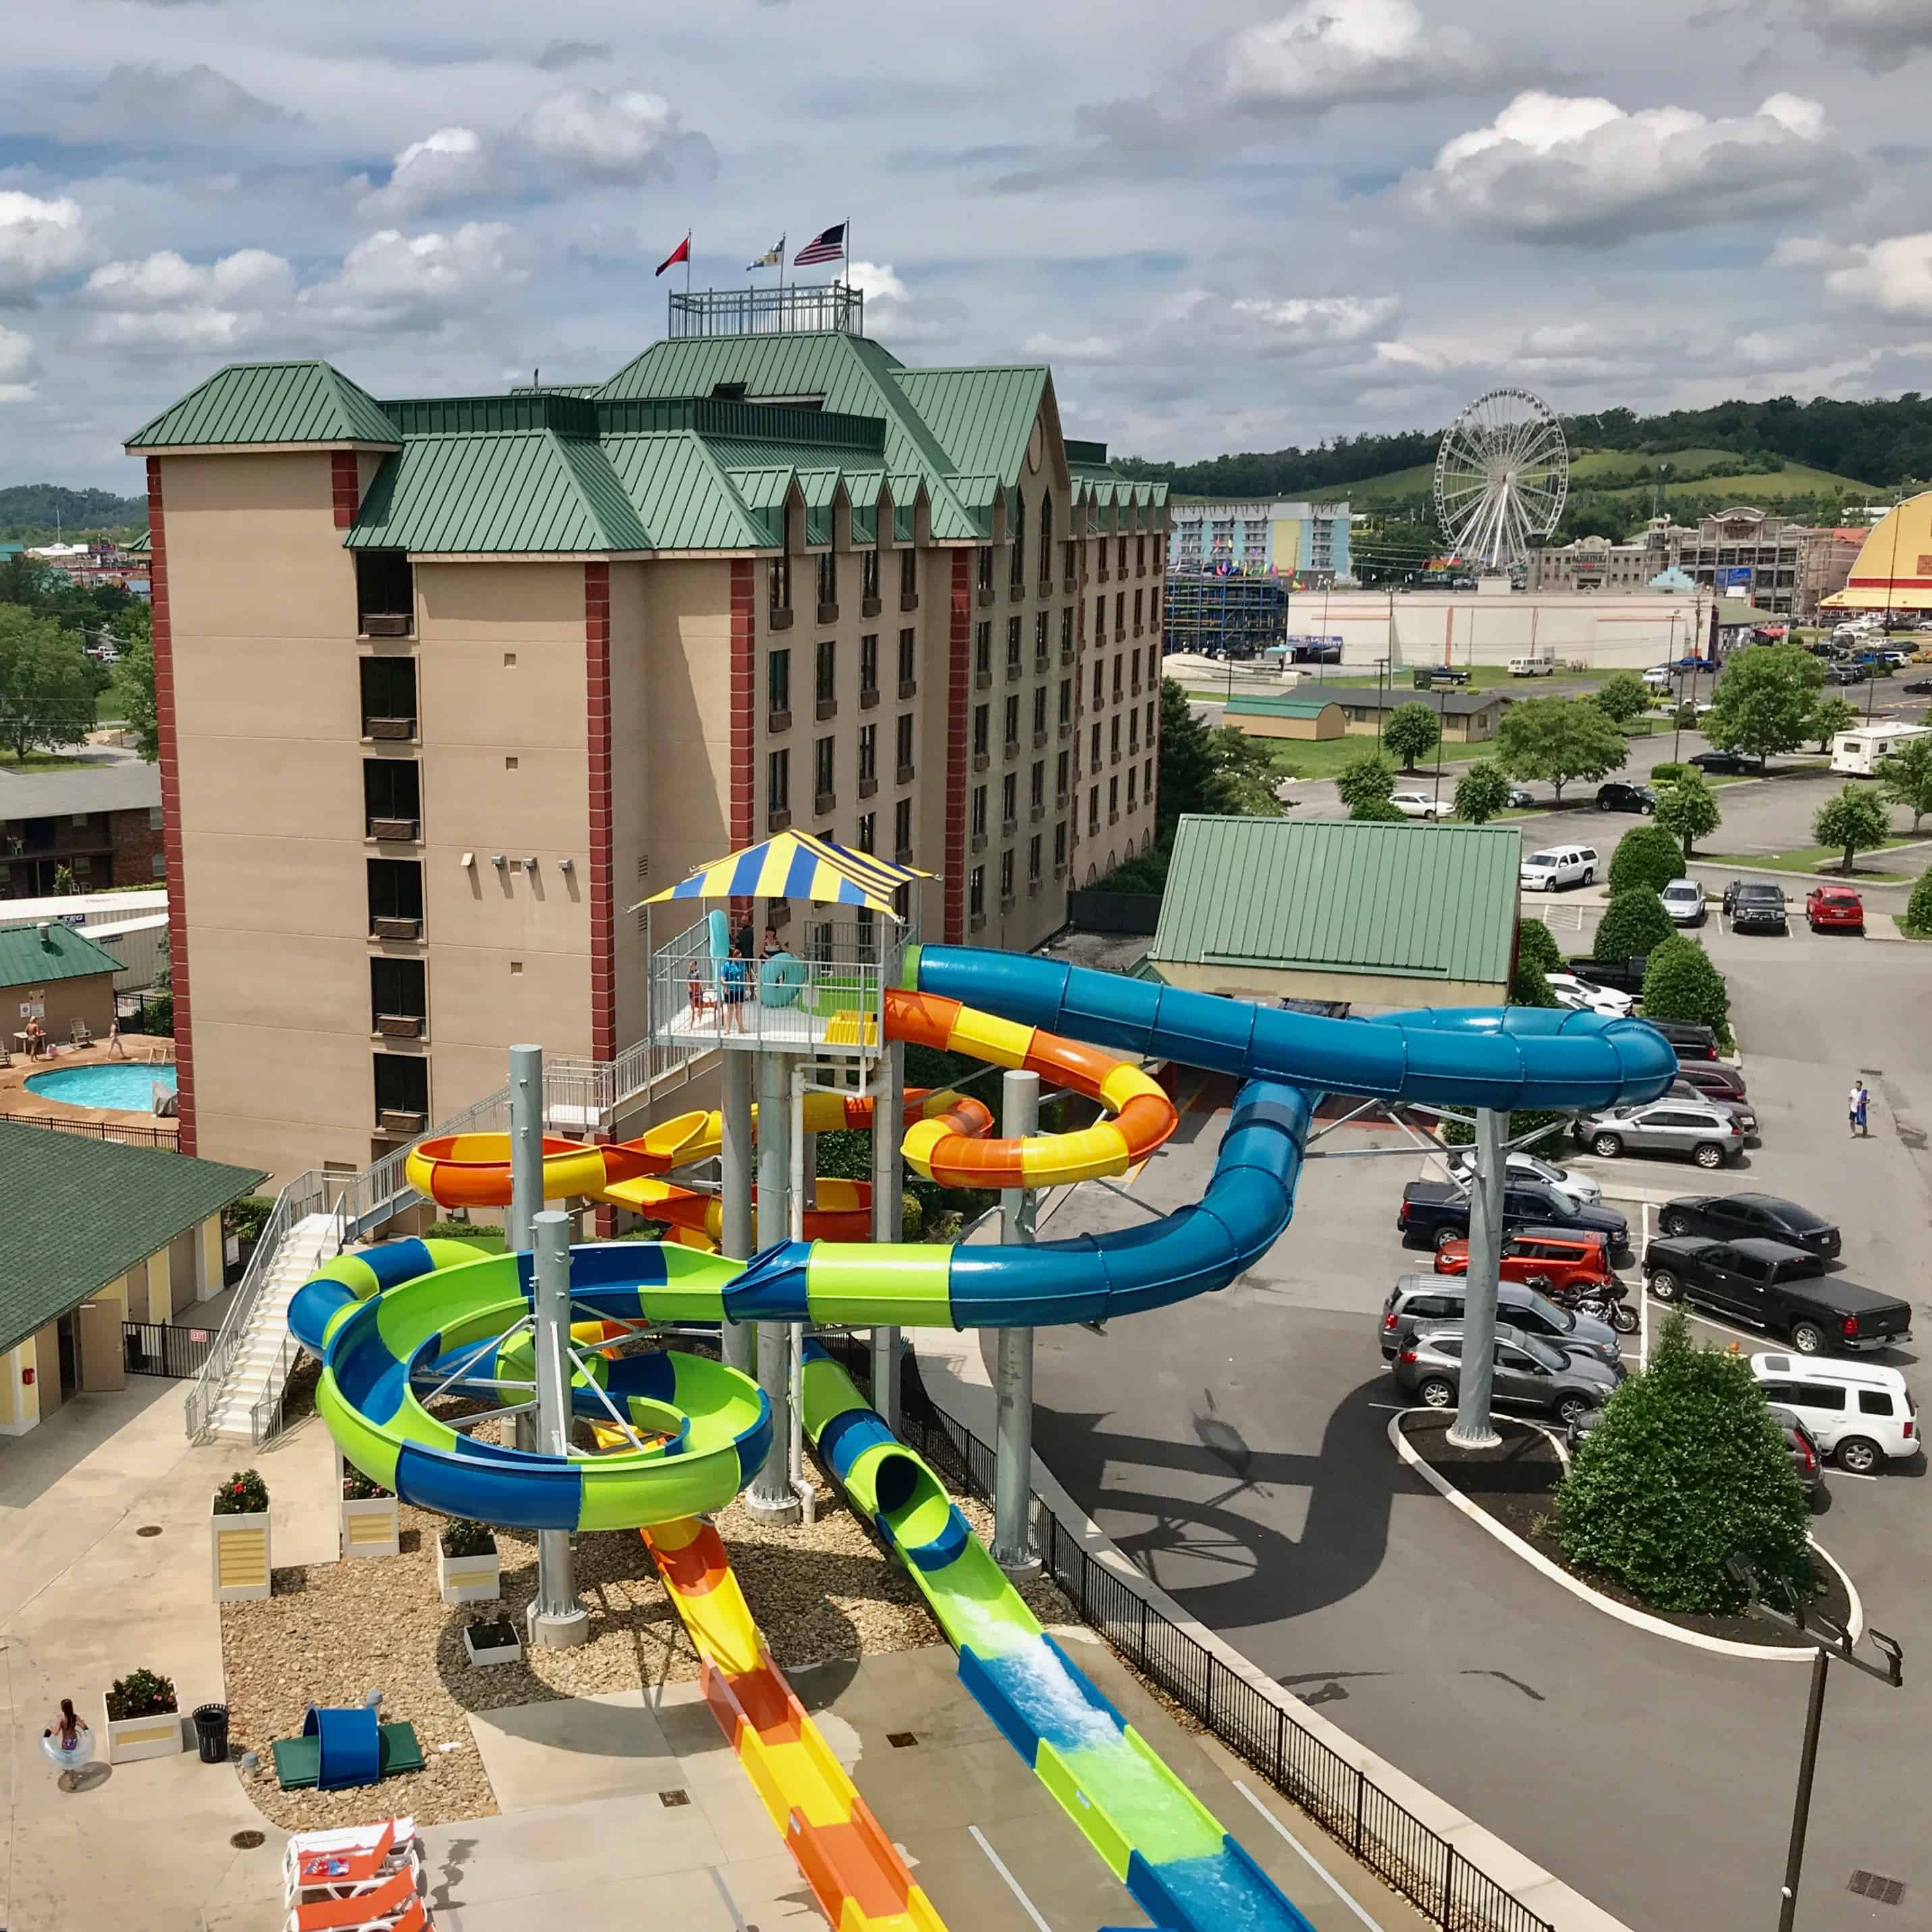 Country Cascades Hotel Pigeon Forge Tennessee is built with families in mind with everything from the waterpark to the breakfast area. If you're planning some Pigeon Forge family fun, this summer here are 5 reasons to consider a stay at Country Cascades.